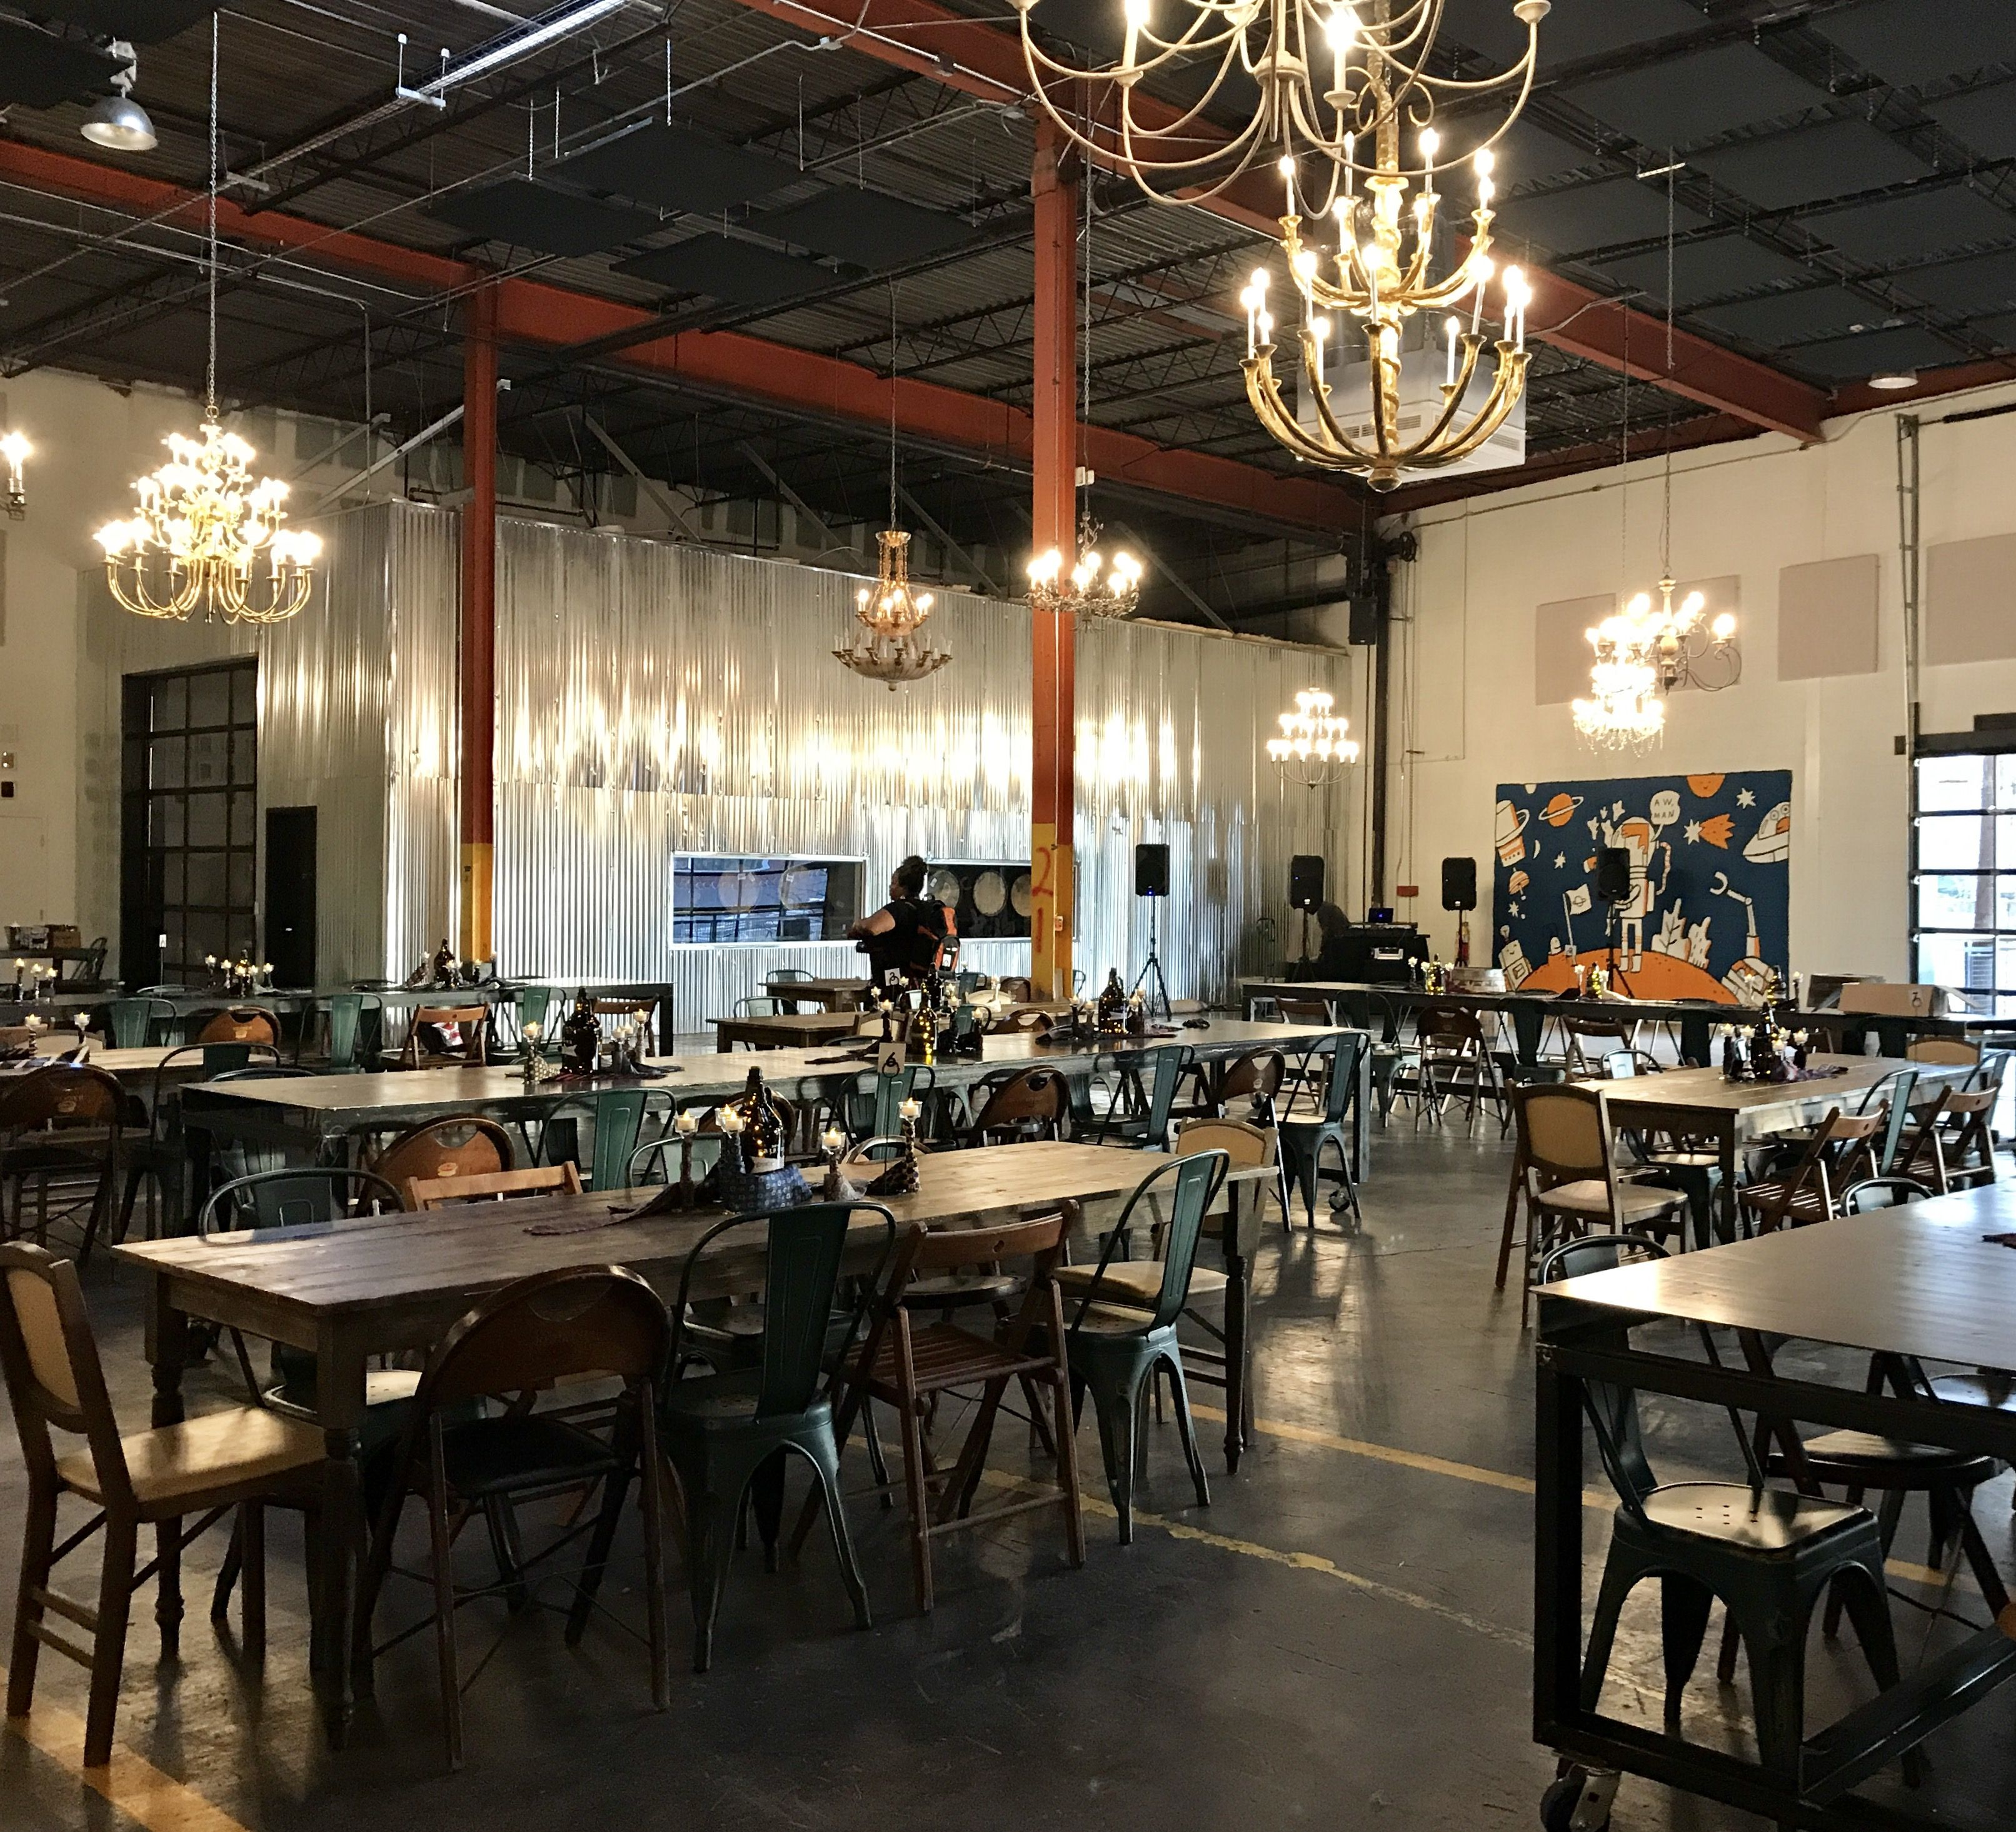 Garage Brewing Restaurant The Garage At Monday Night Brewing Great Venue Great Beer